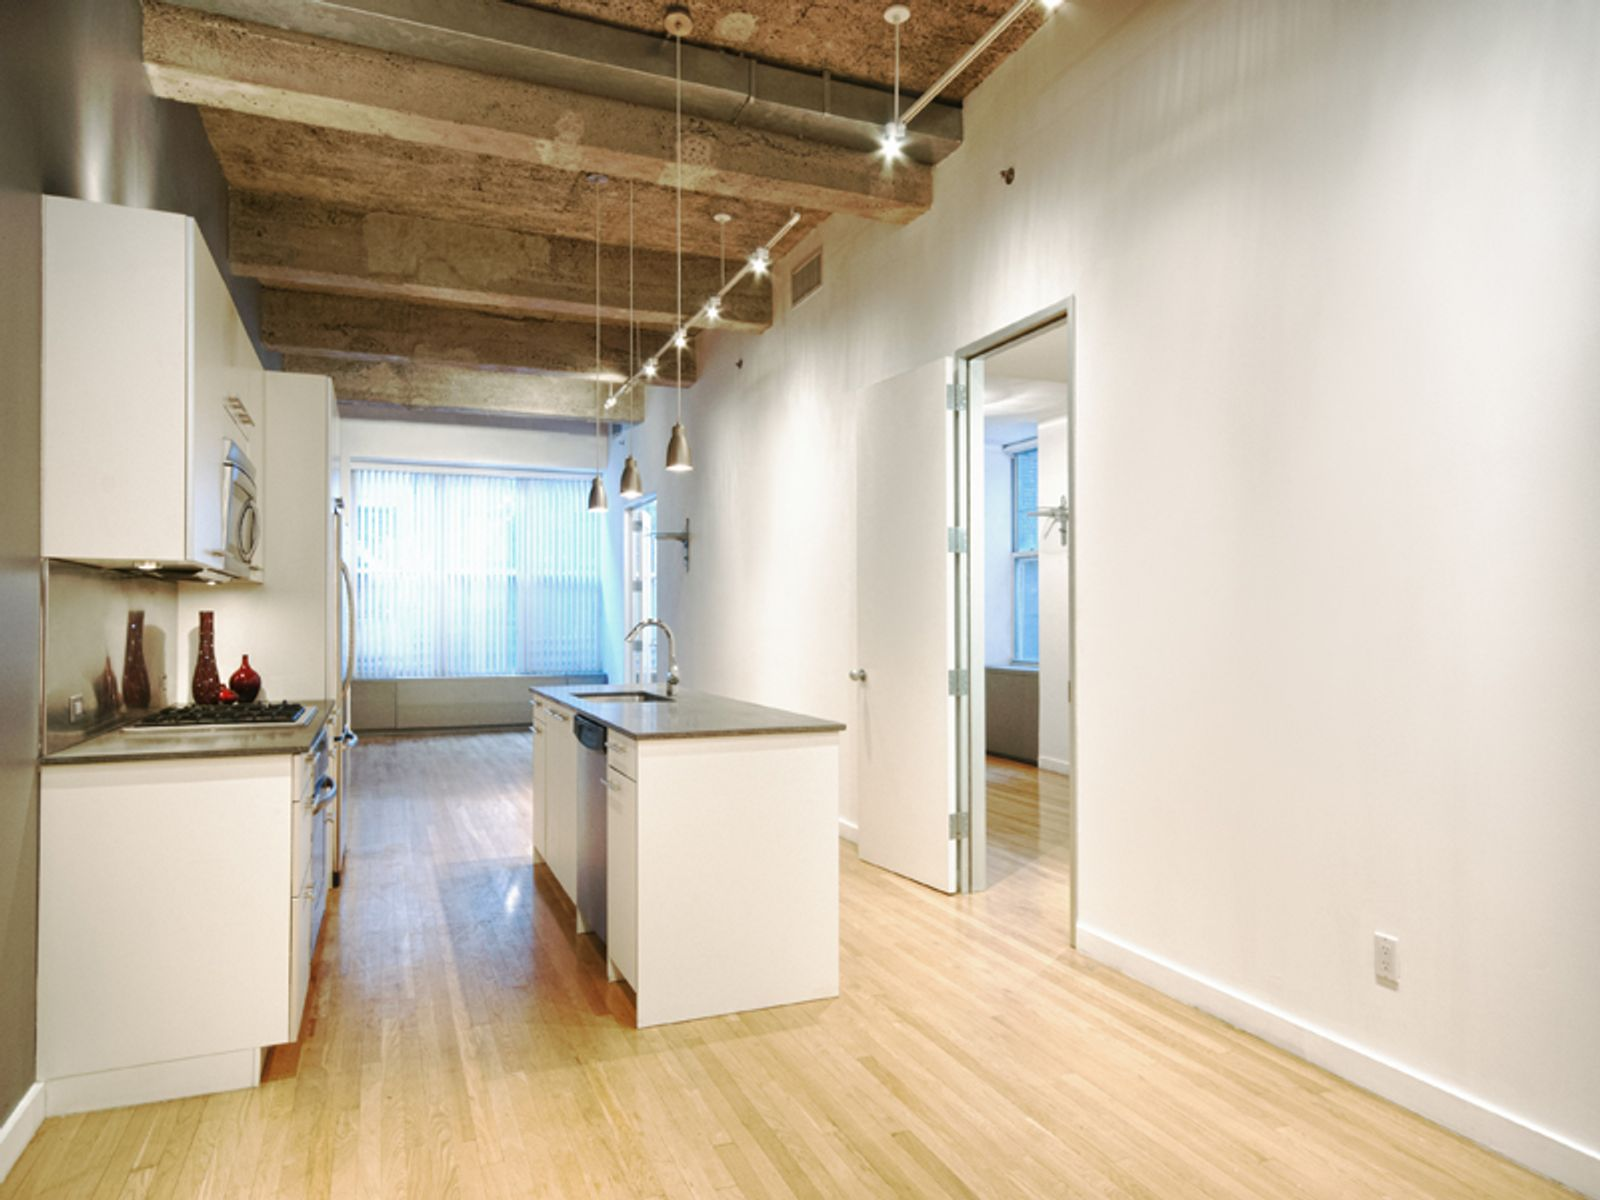 419 West 55th Street, 2C, New York NY Condop - New York City Real Estate